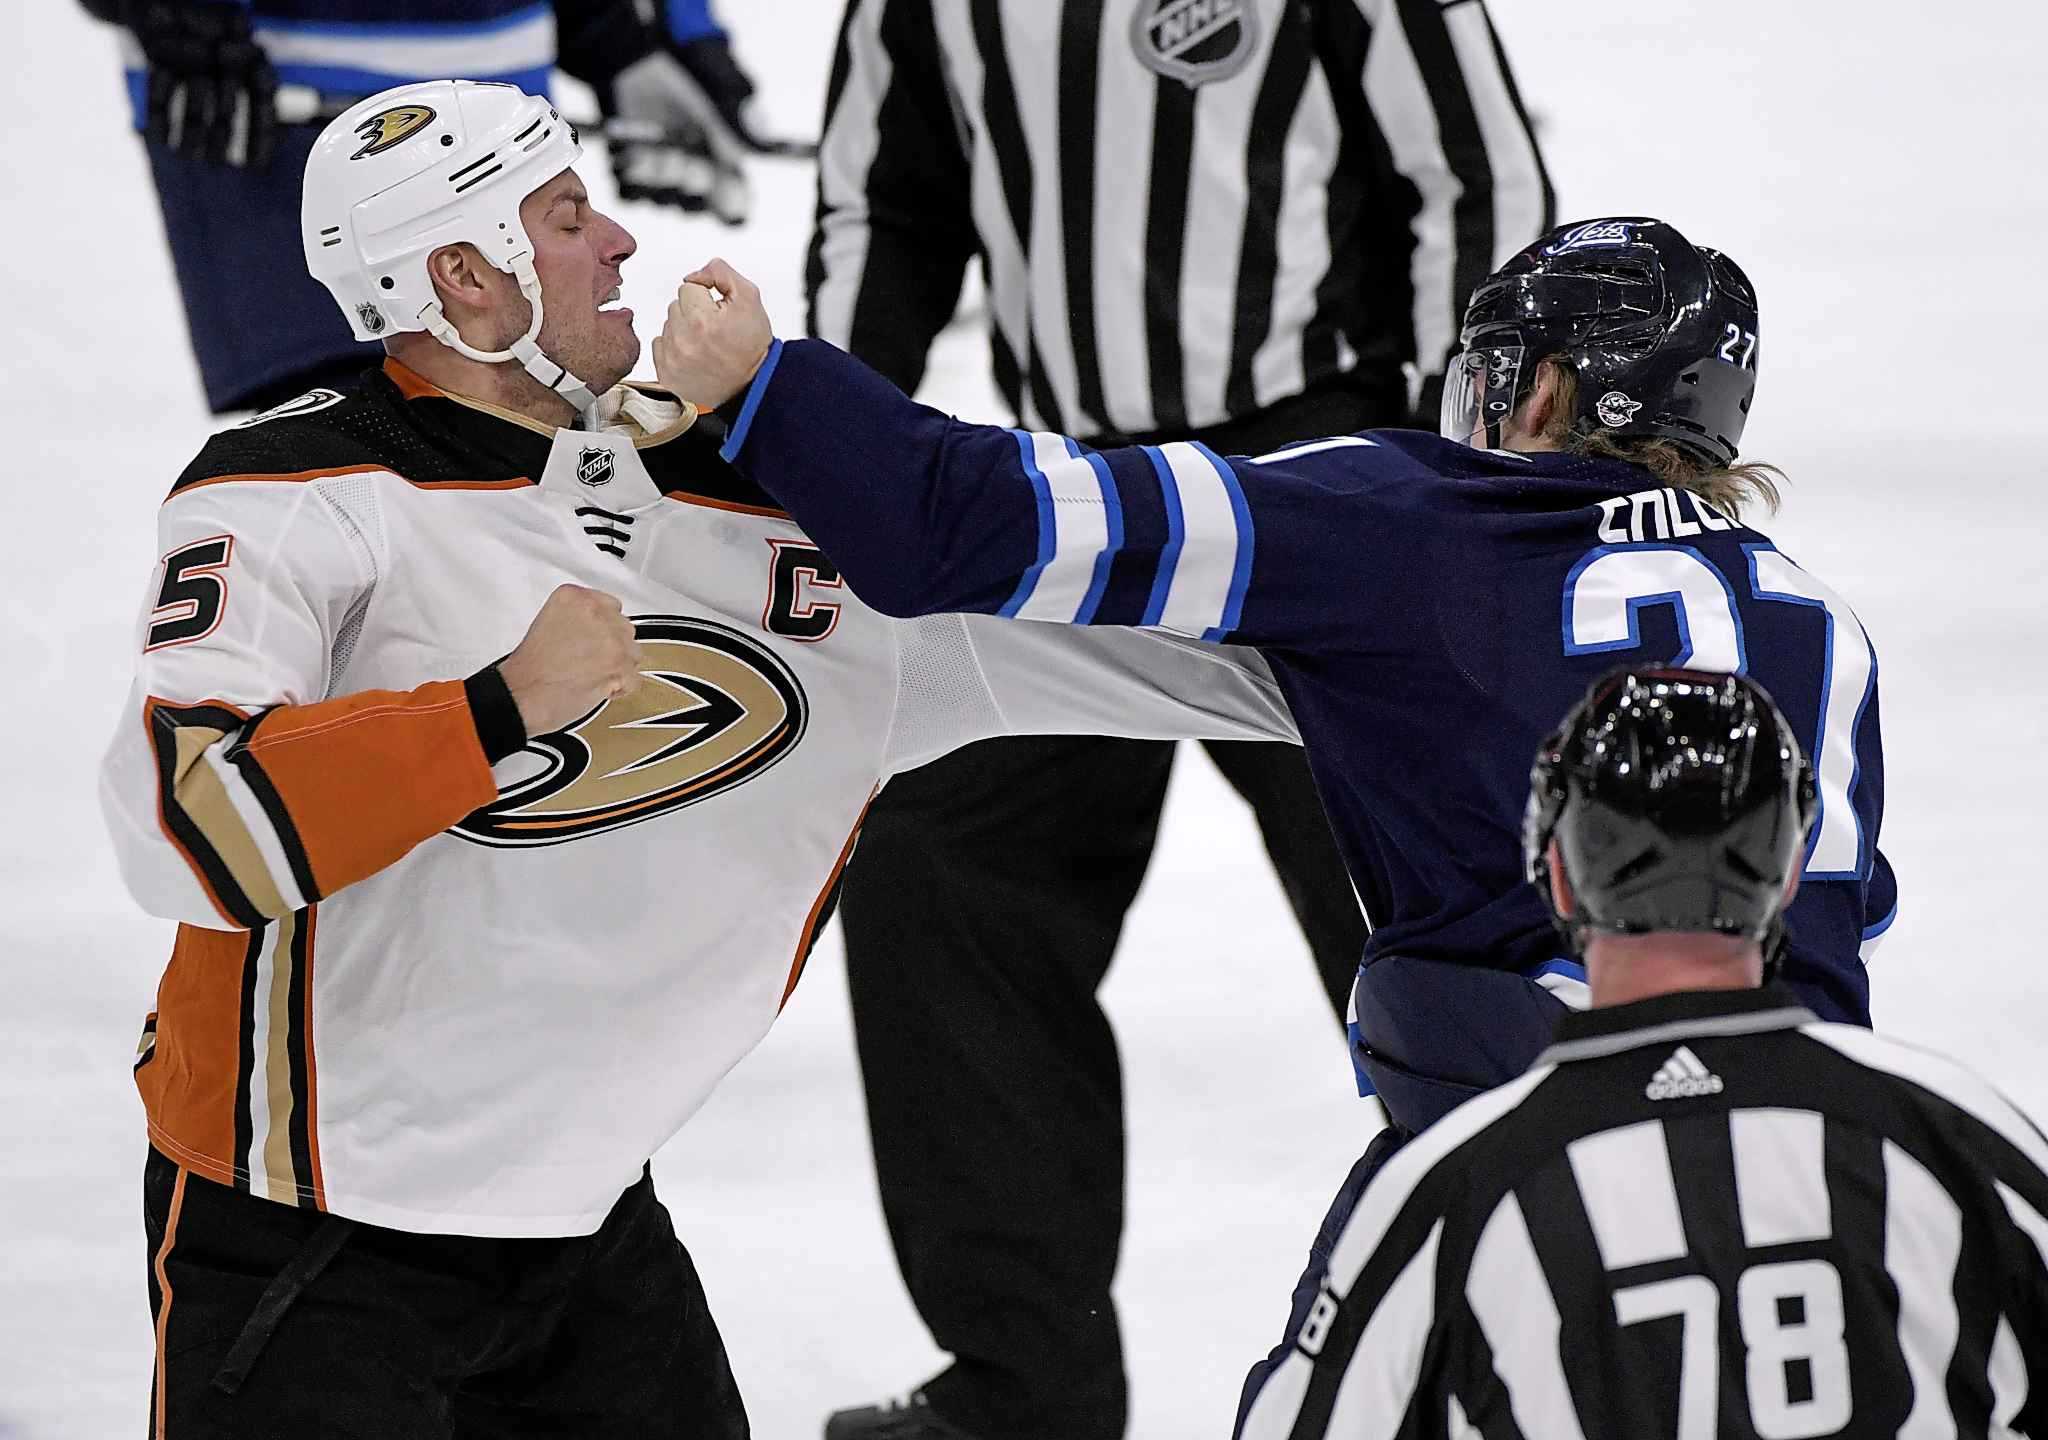 Nikolaj Ehlers takes a swing at Ryan Getzlaf during the first period in Winnipeg. (Fred Greenslade / The Canadian Press)